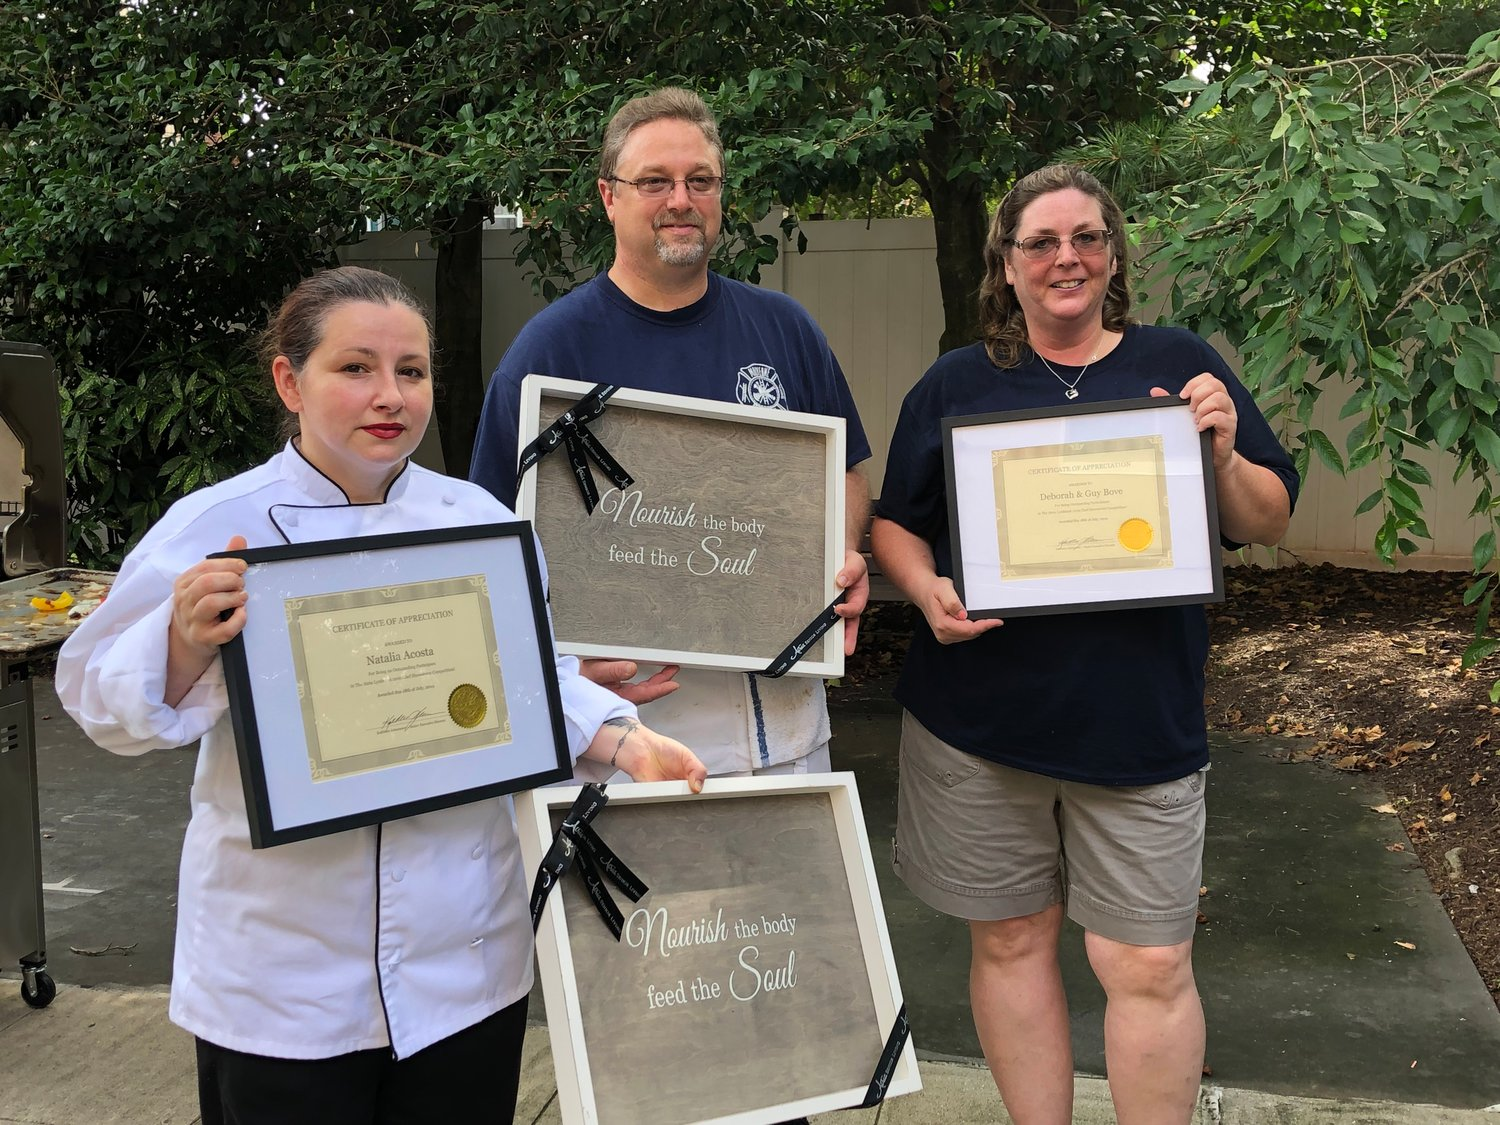 Atria Senior Living chef Natalia Acosta, left, battled firefighters and Malverne residents Guy and Deborah Bove in this summer's chef showdown on July 18.